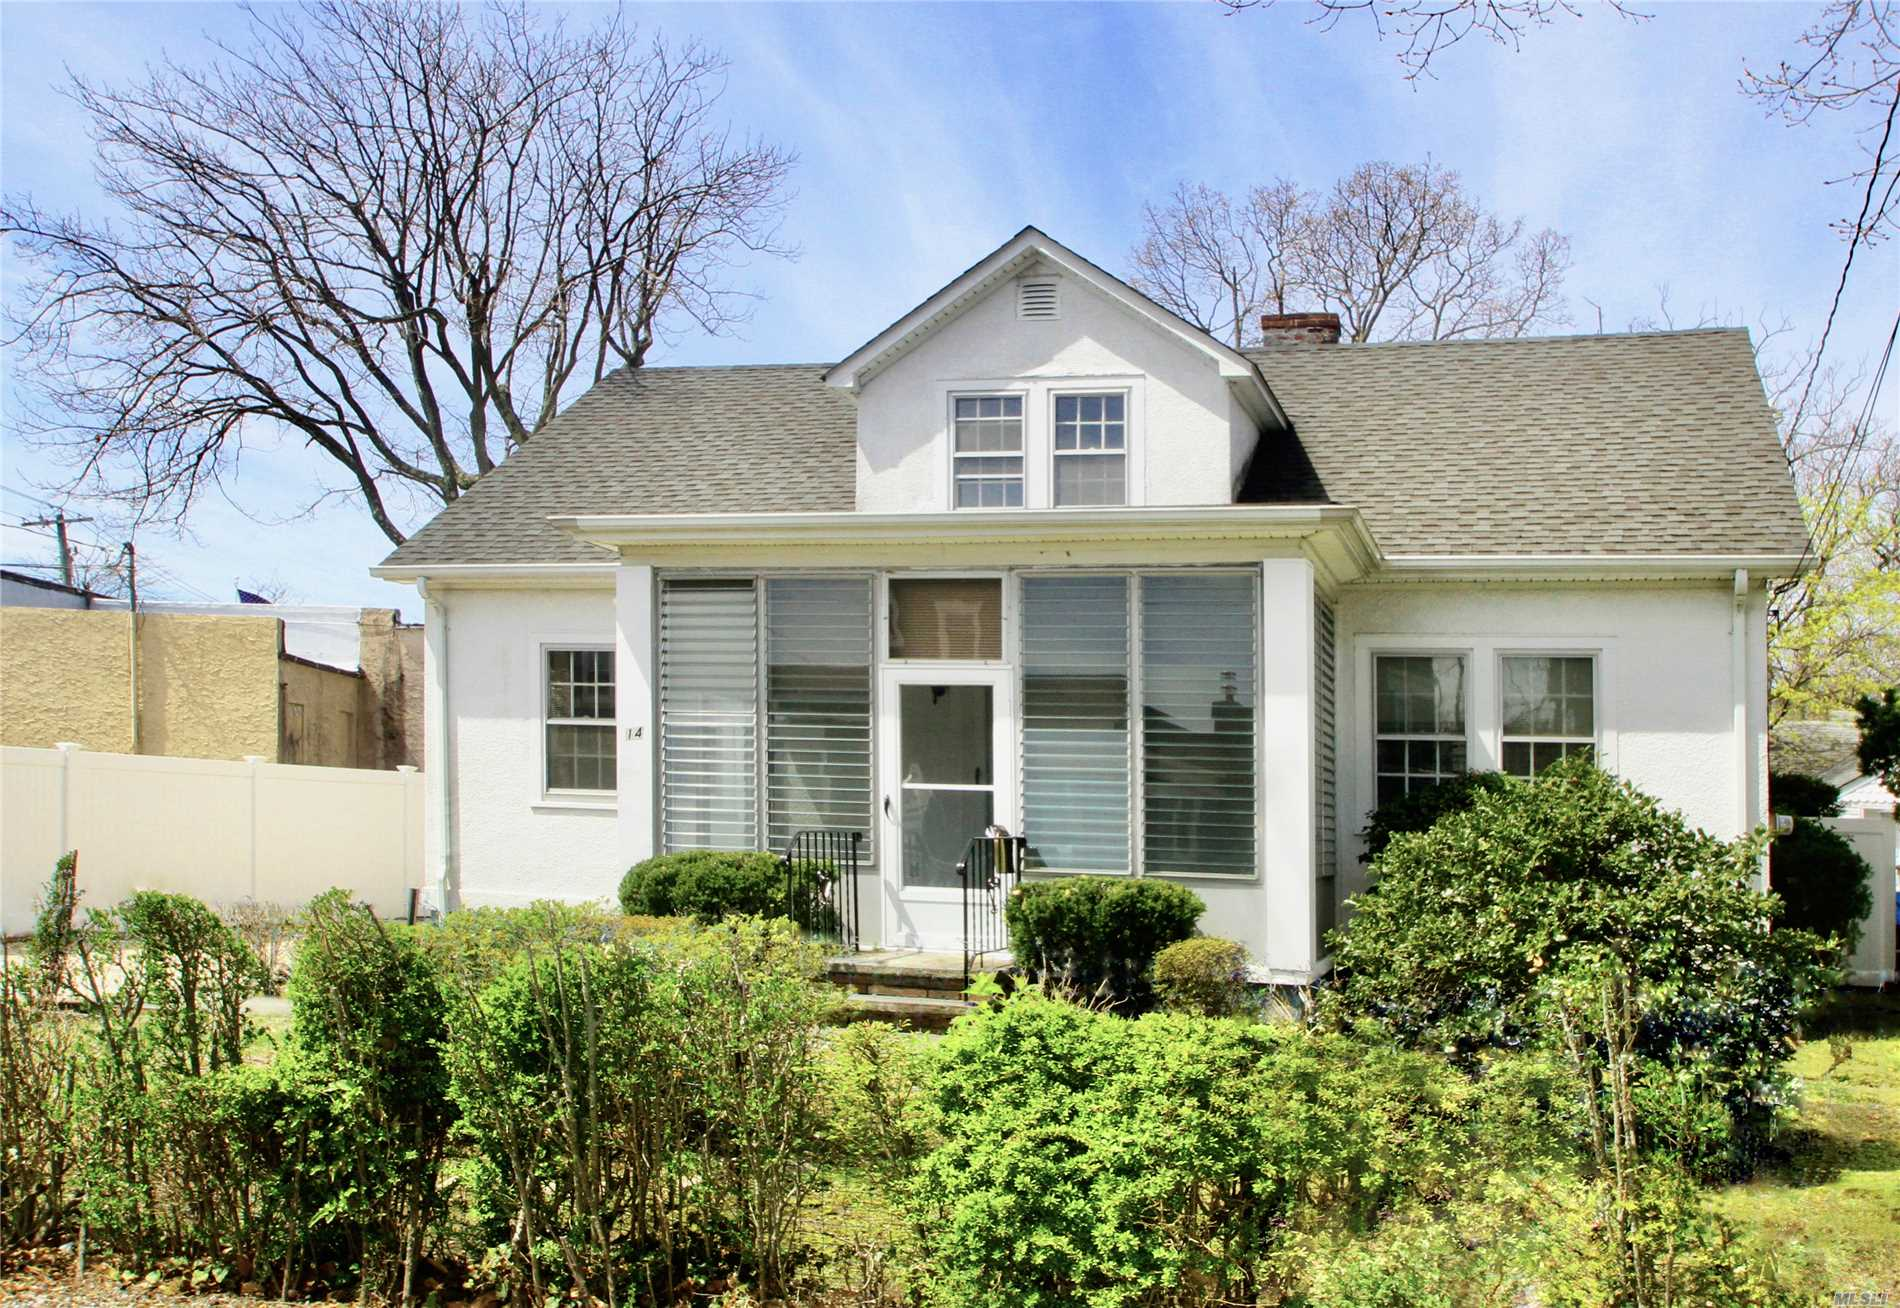 Charming 1920's 4 Bedroom 2 Bath Stucco Cape in Private Beach Community awaiting your finishing touches. Choose your kitchen countertop and design your dream bathroom. Enjoy the warm summer nights on the enclosed front porch and spend the cold winter nights in the living room in-front of the wood burning fireplace. This Home also features a formal dining room, full basement, second floor sitting area and laundry area, 2 car detached garage and access to Private beach in the heart of Bayville.